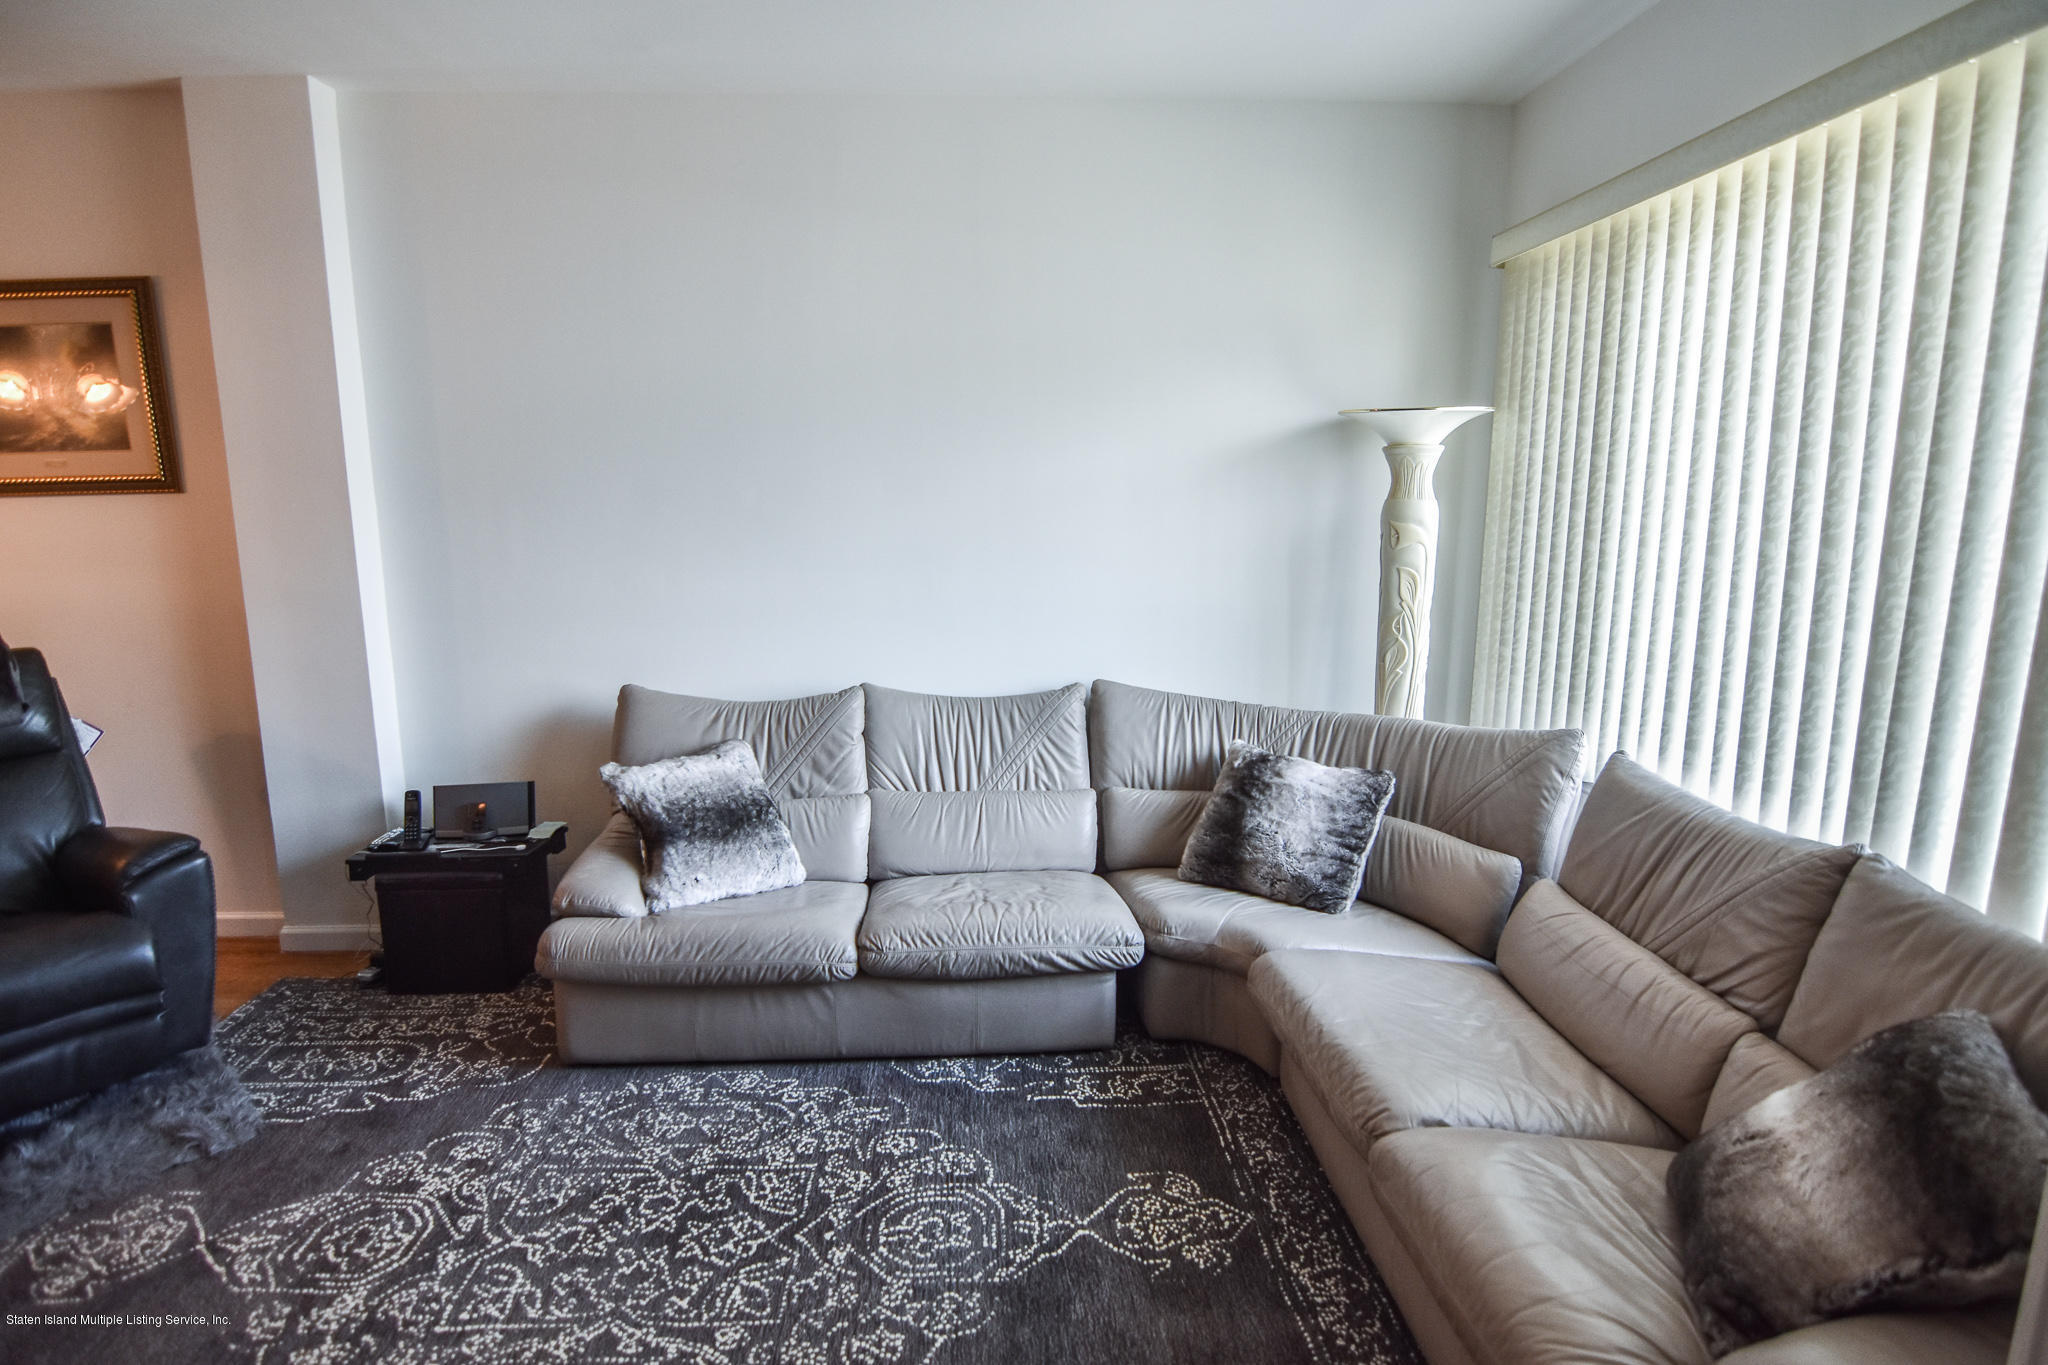 Single Family - Semi-Attached 762 Bloomingdale Road  Staten Island, NY 10309, MLS-1125791-6